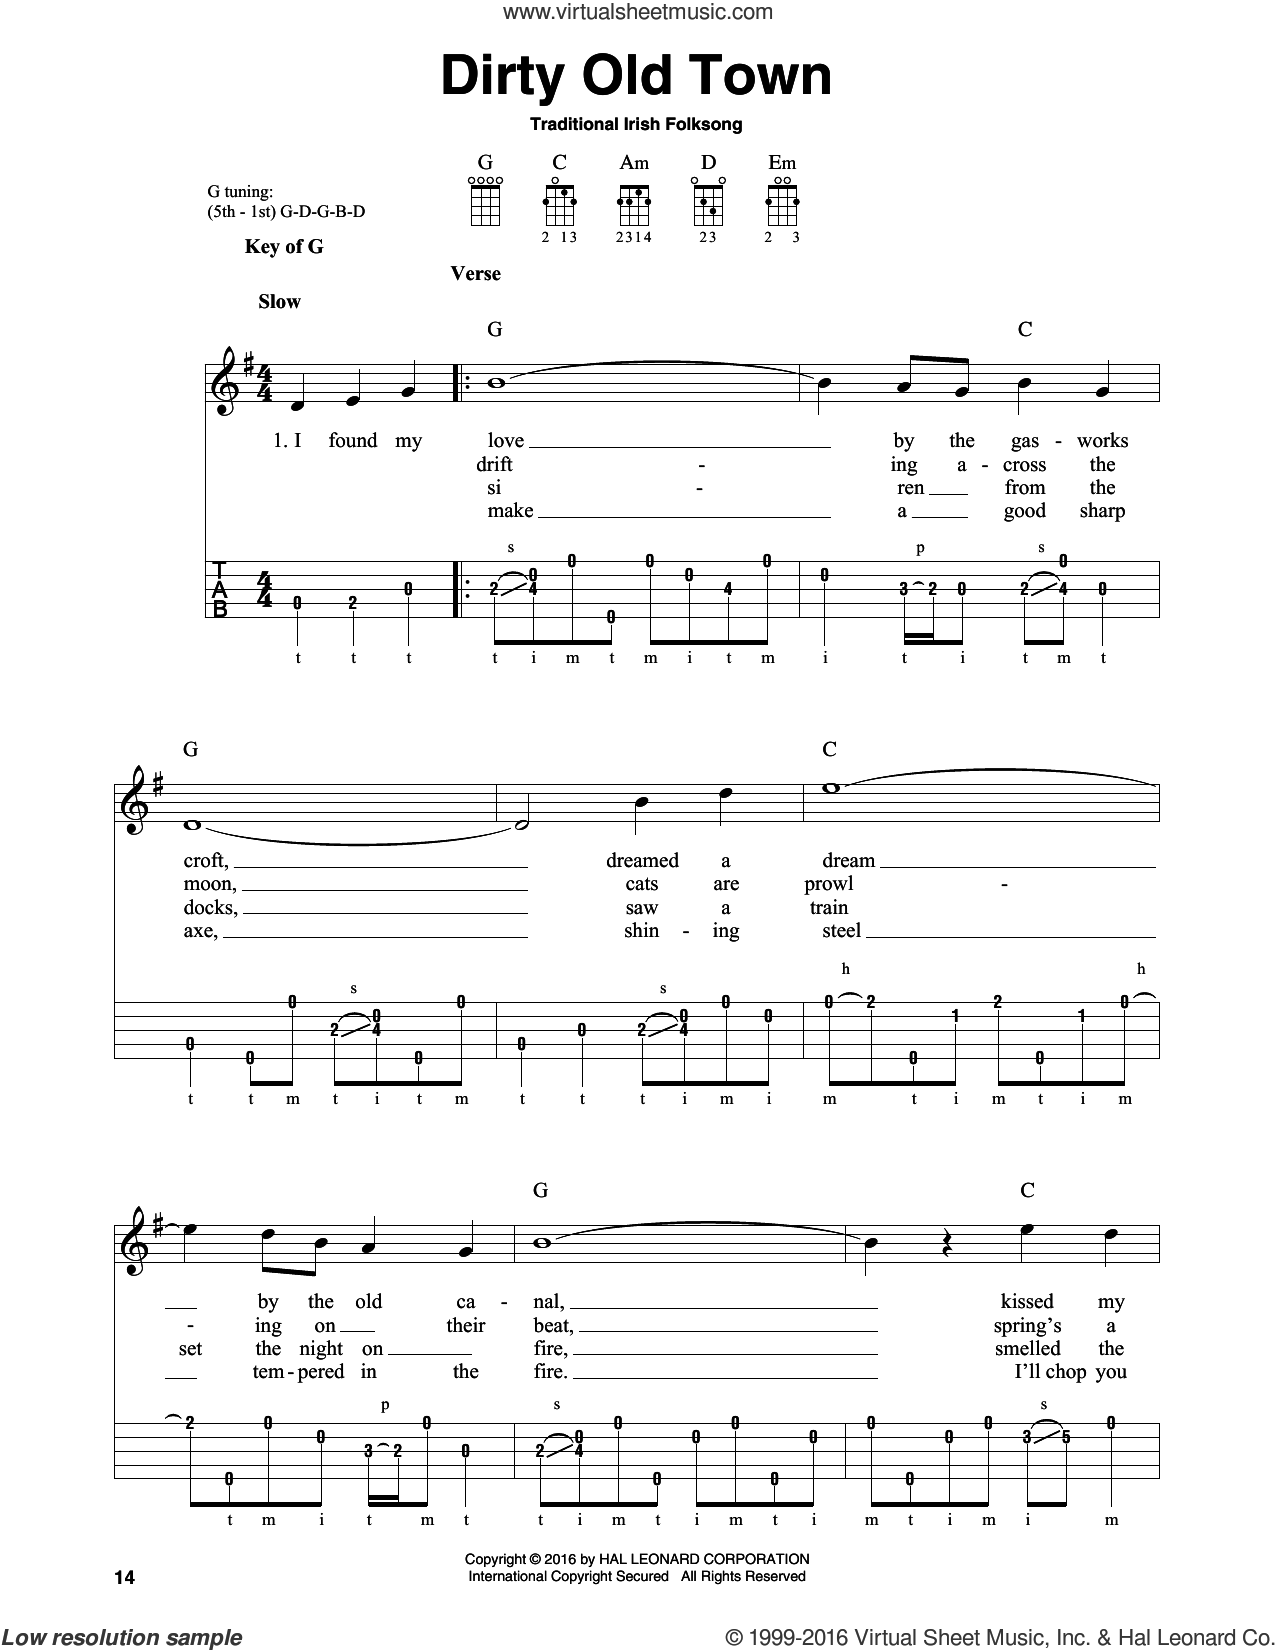 Dirty Old Town sheet music for banjo solo [PDF]